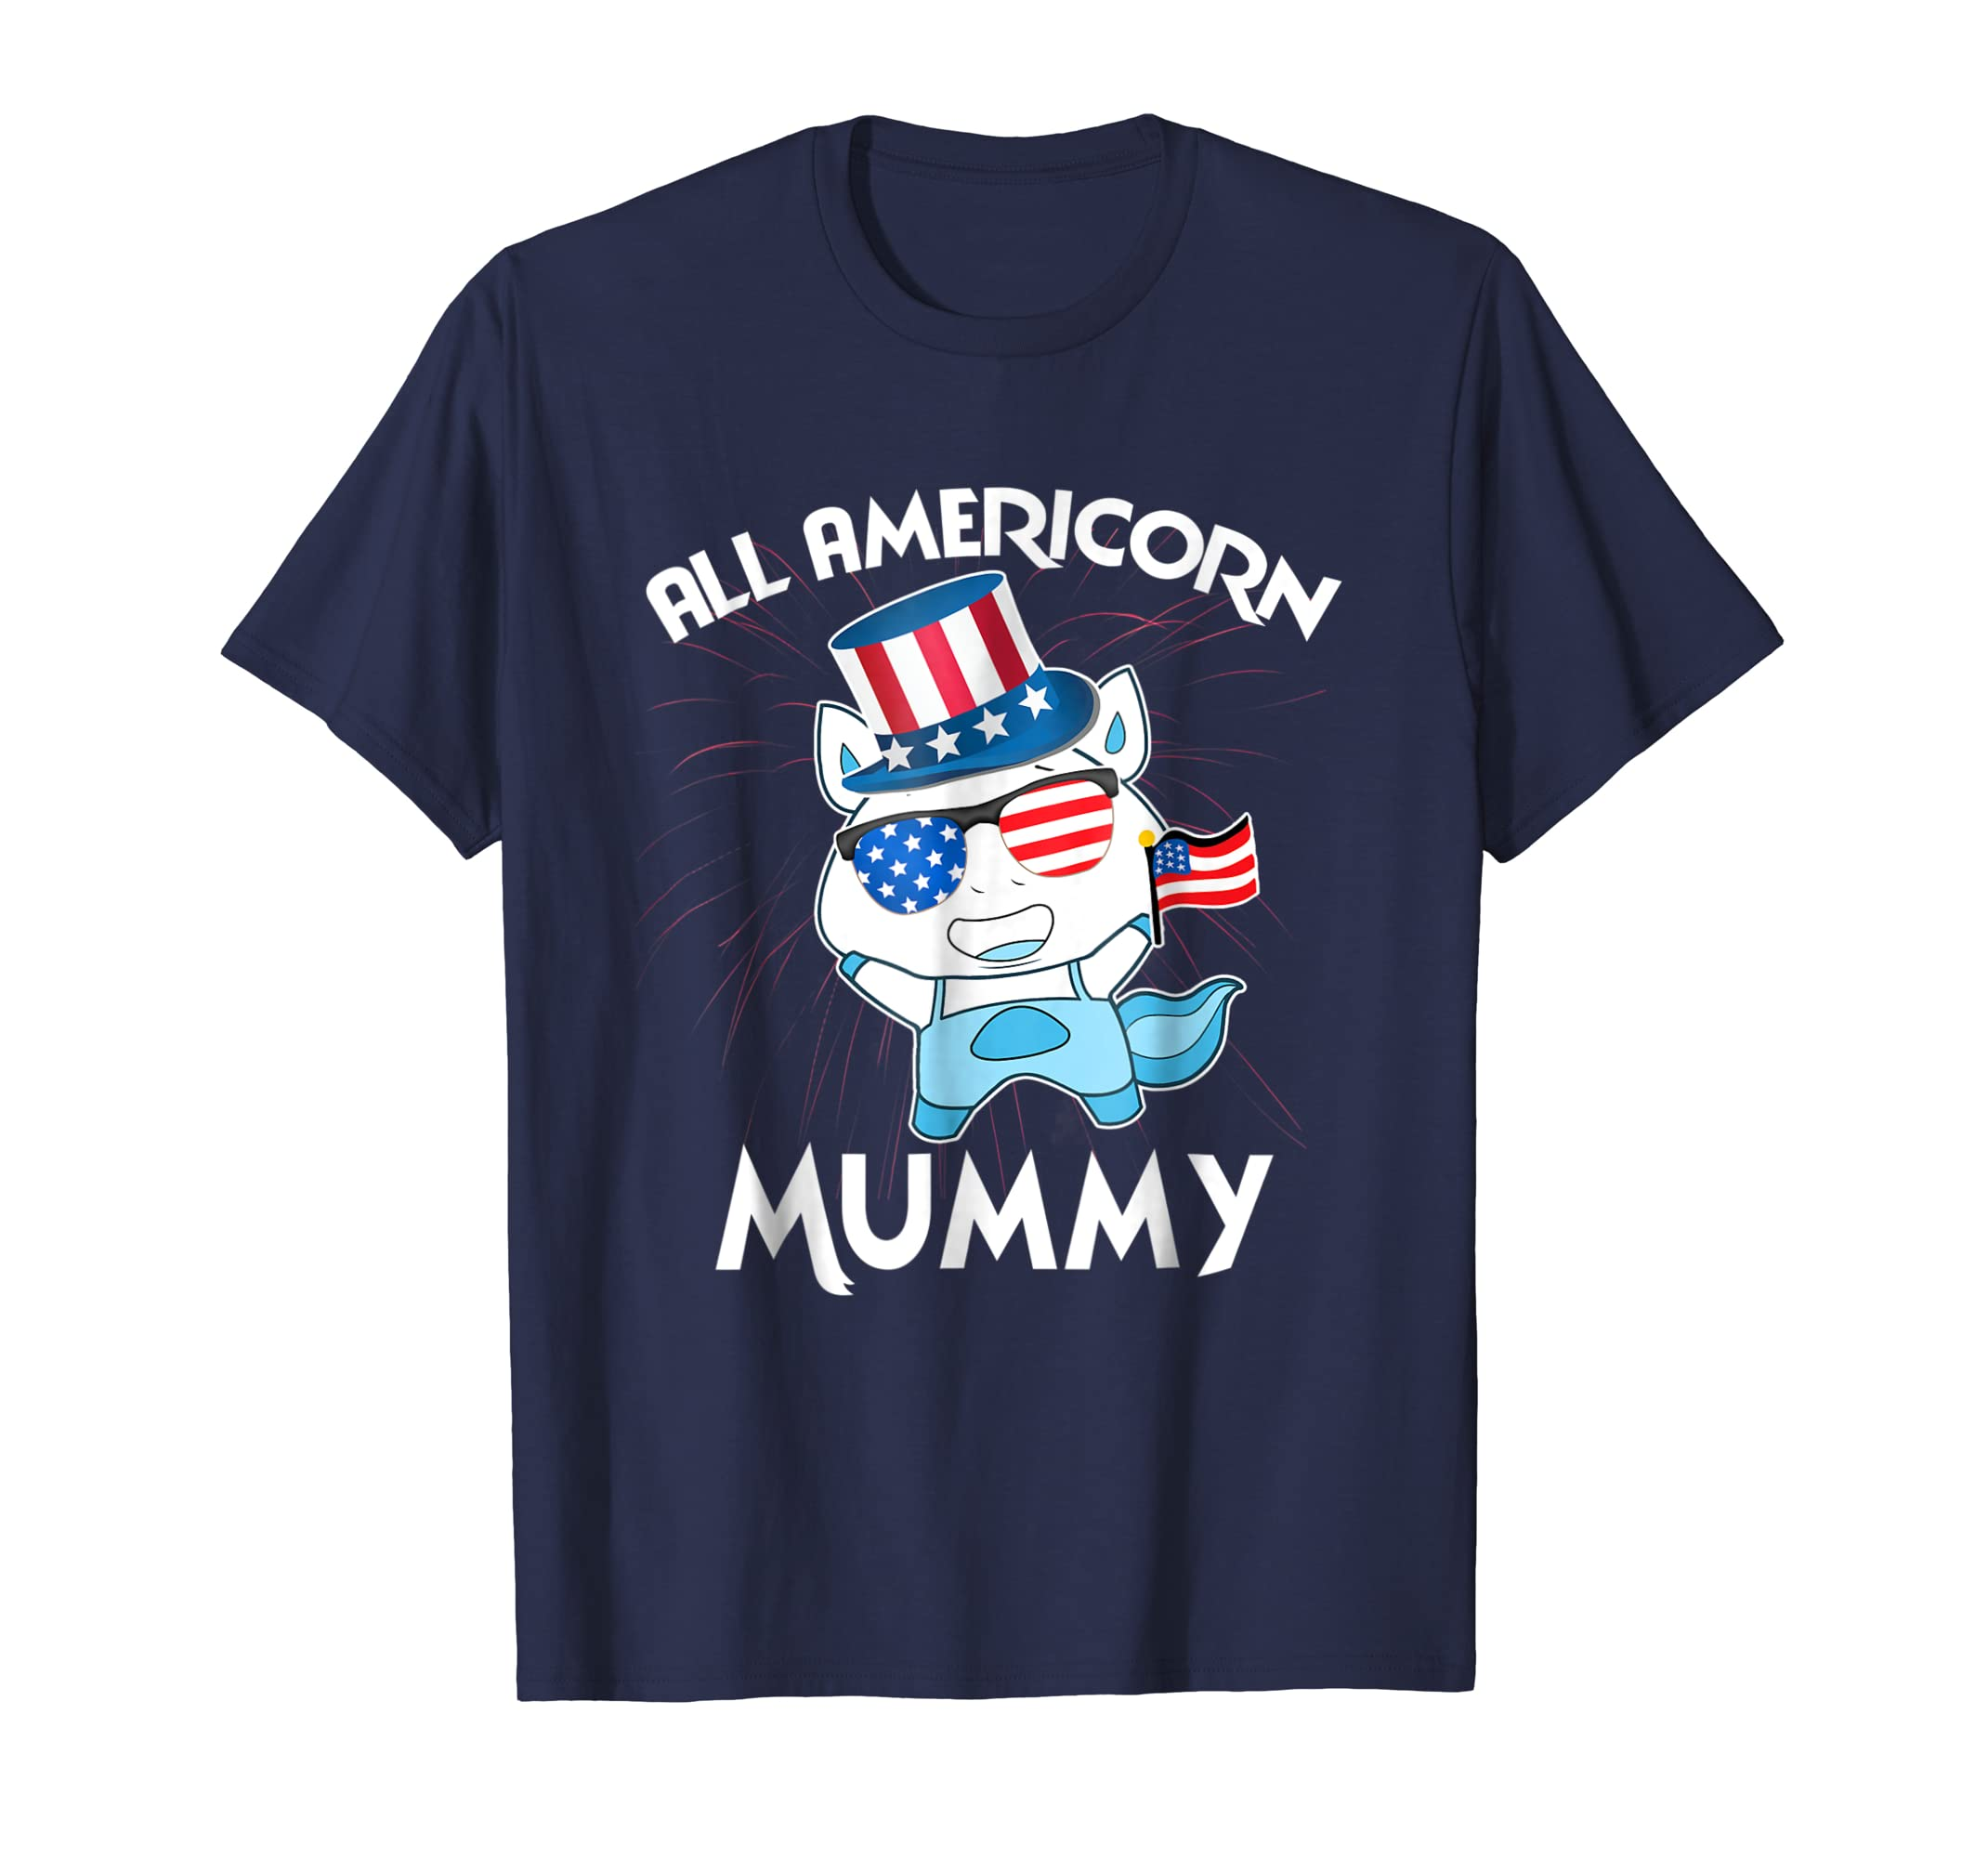 All Americorn Mummy 4th july shirt Mothers Day gifts-mt